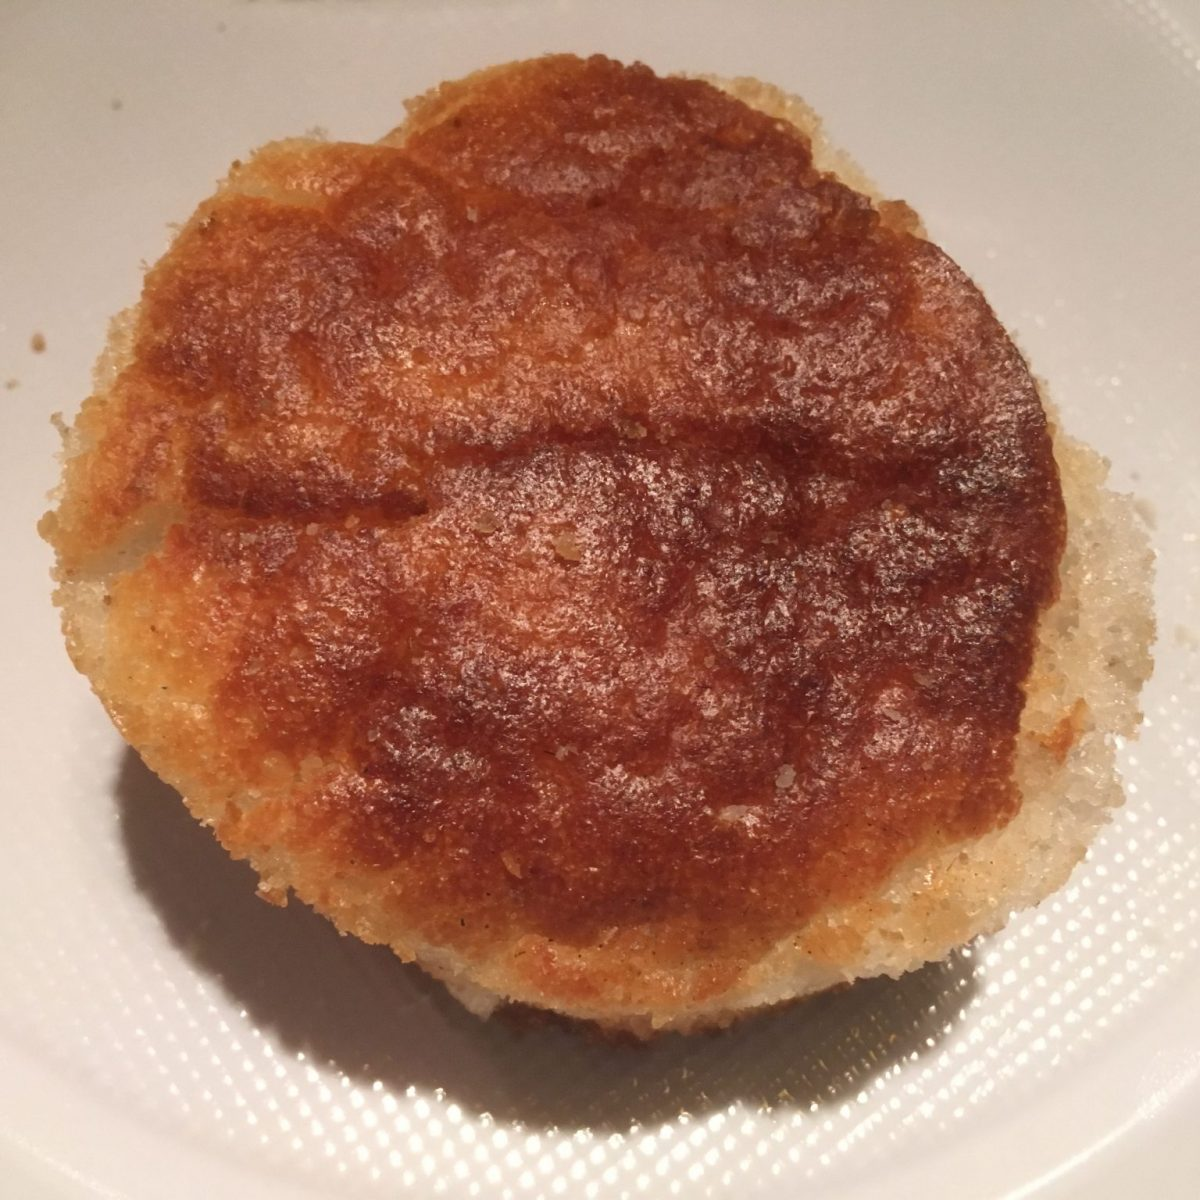 mucate - coconut rice cake - traditional African desserts